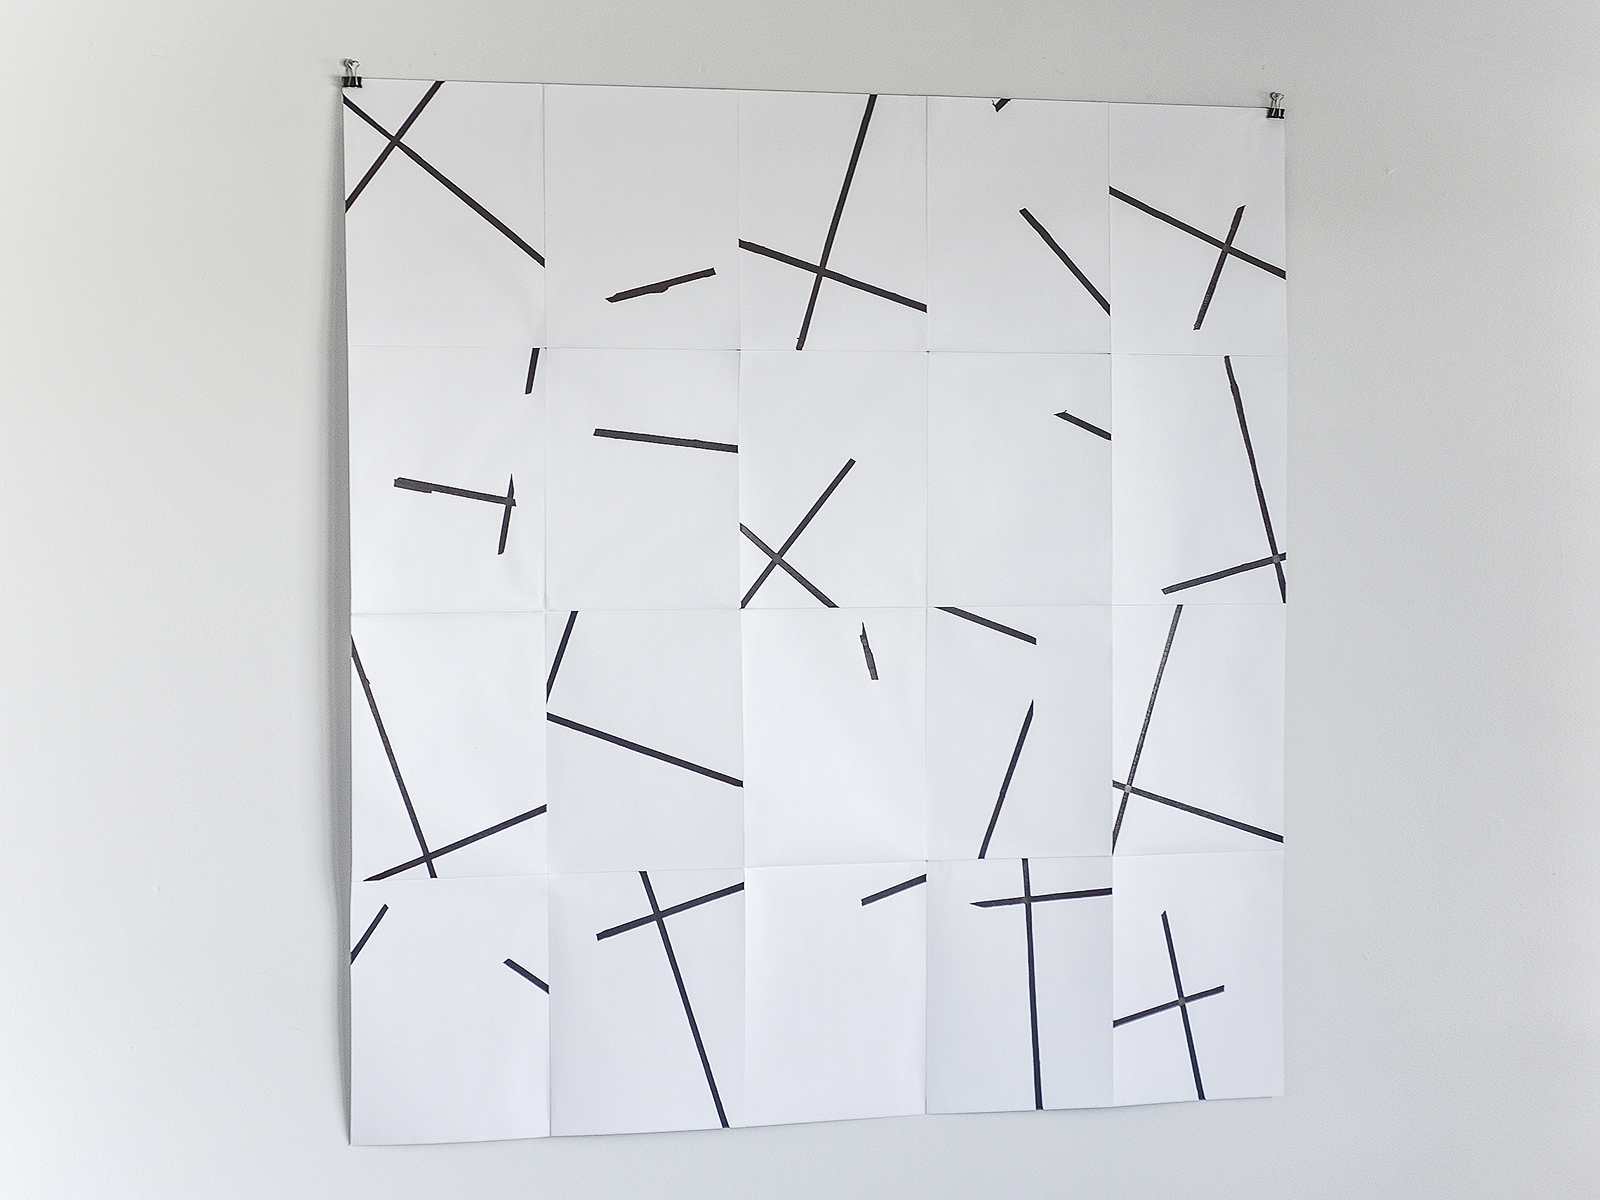 Benoit-Delaunay-artiste-installations-2012-A Set of Valuable Skills-Every Angles-05